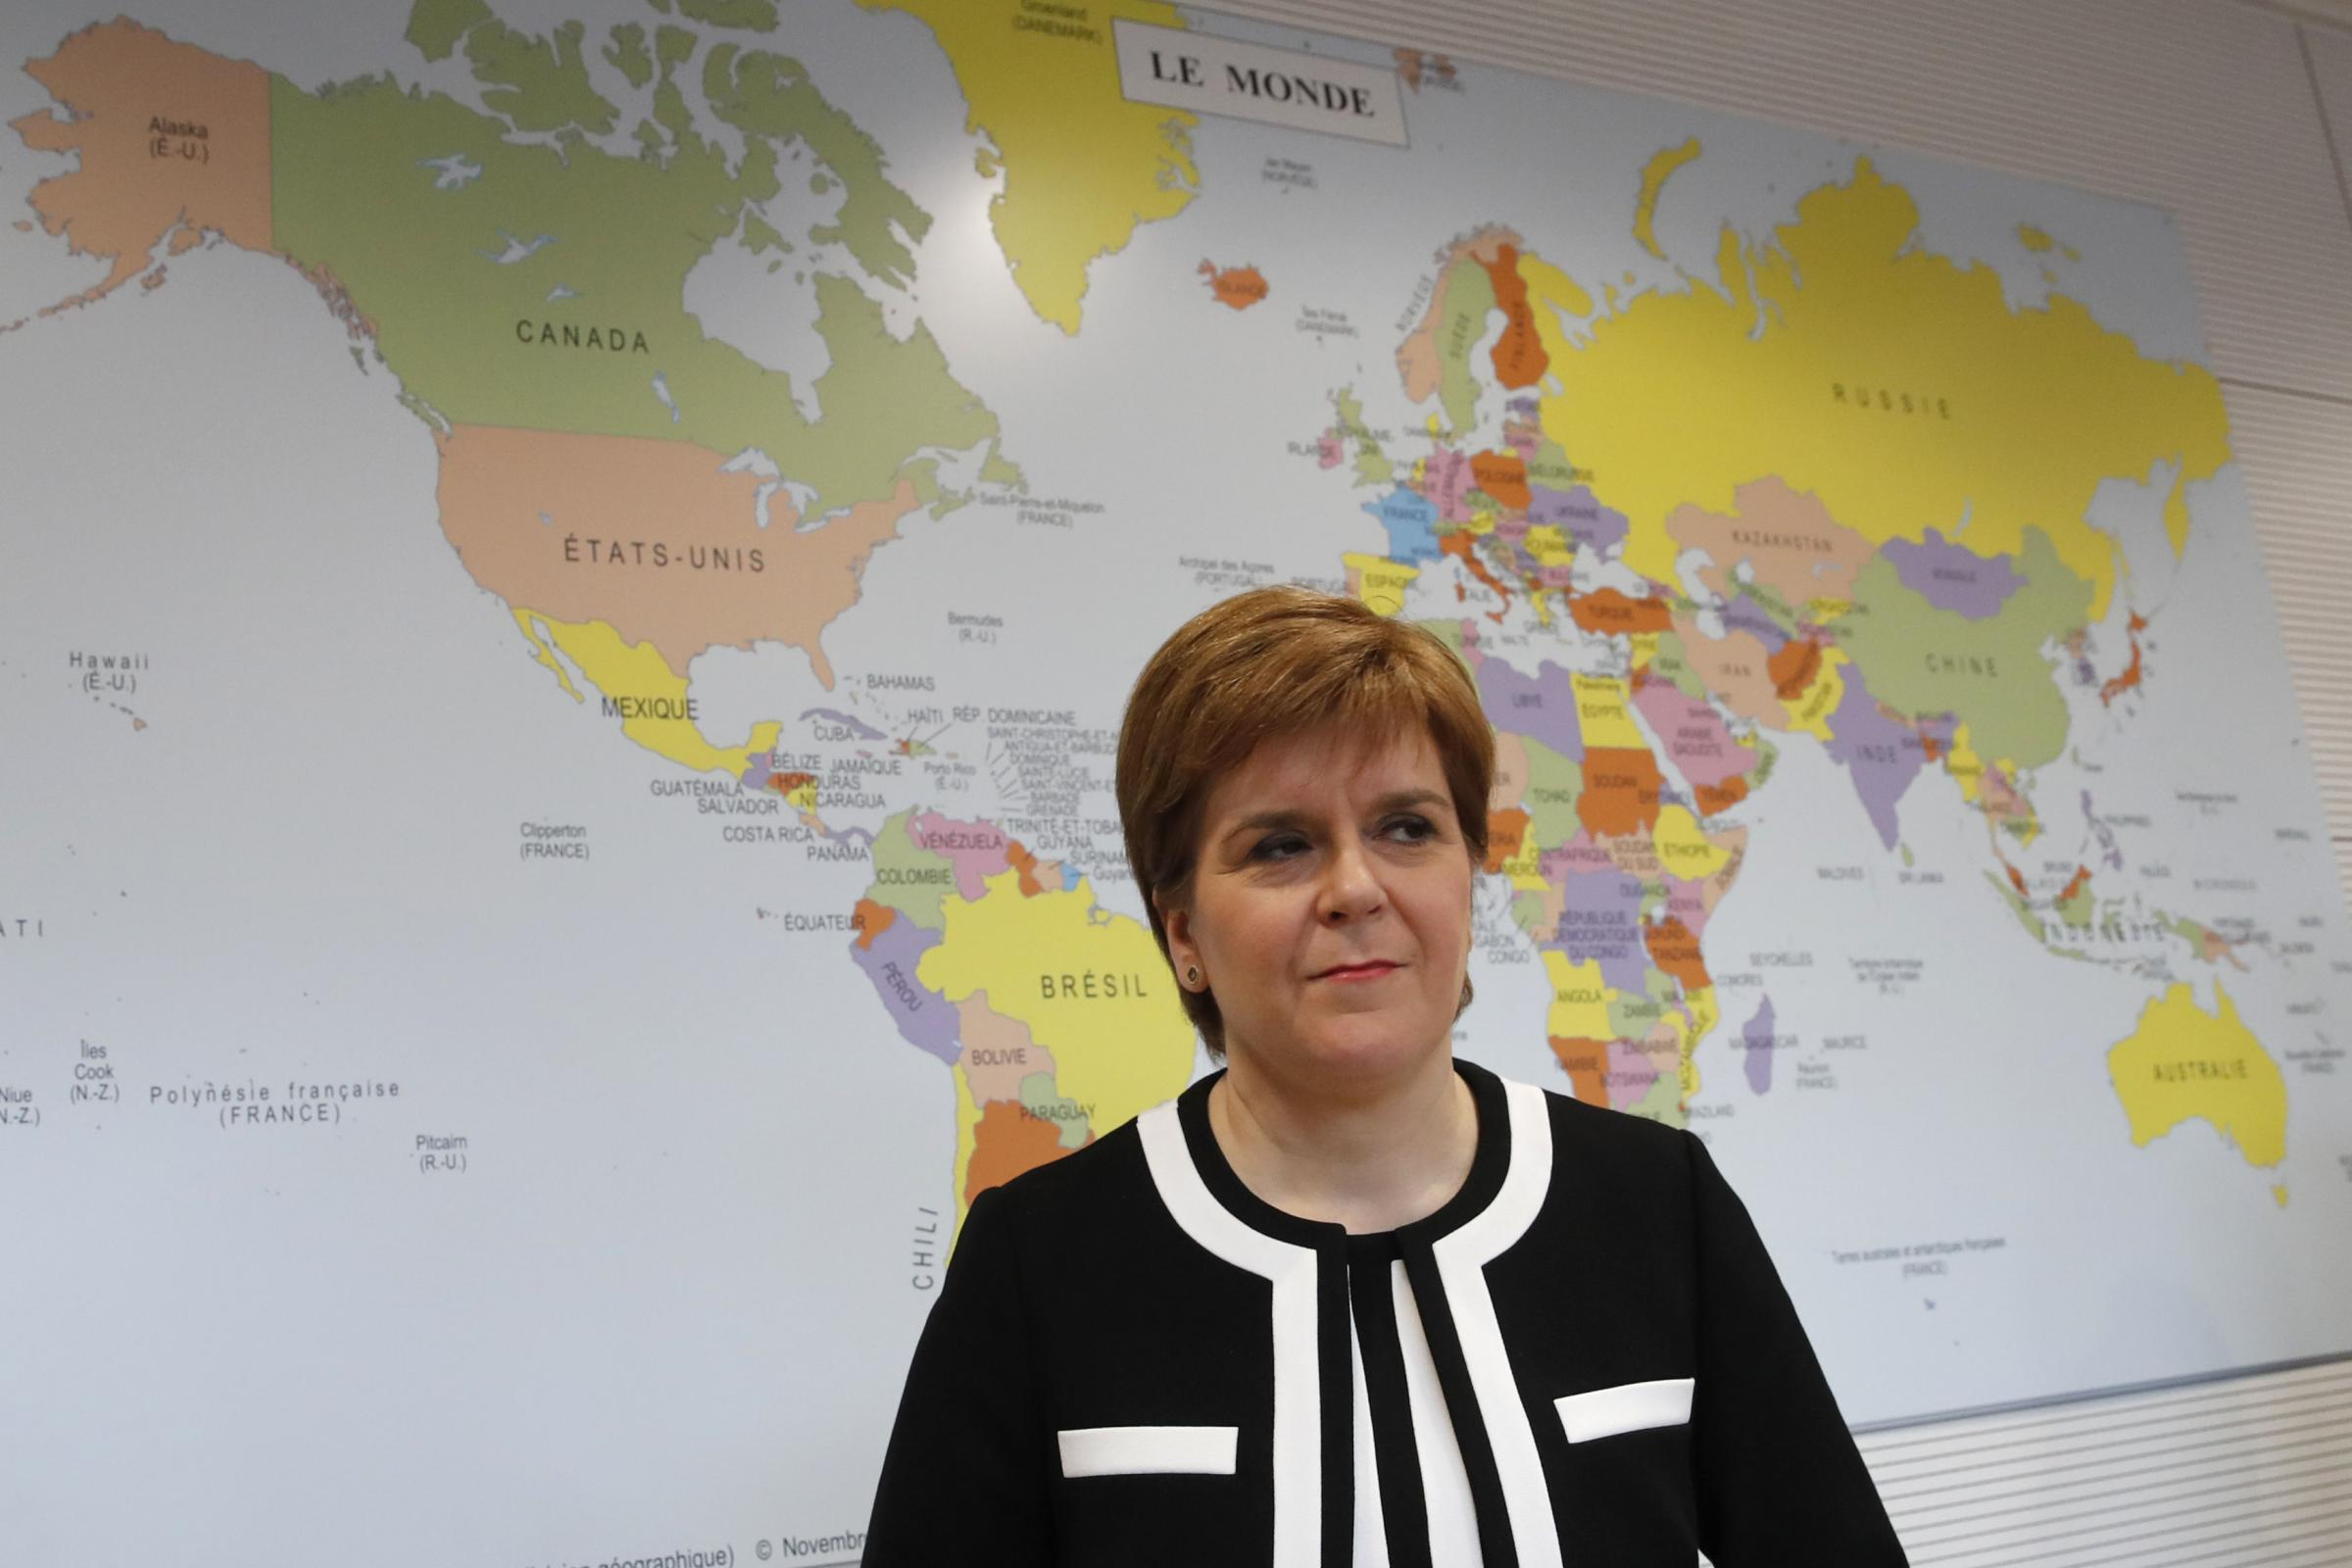 Westninster ignores Scotland, and our independence will be different from 'isolationism that characterises Brexit' - Nicola Sturgeon